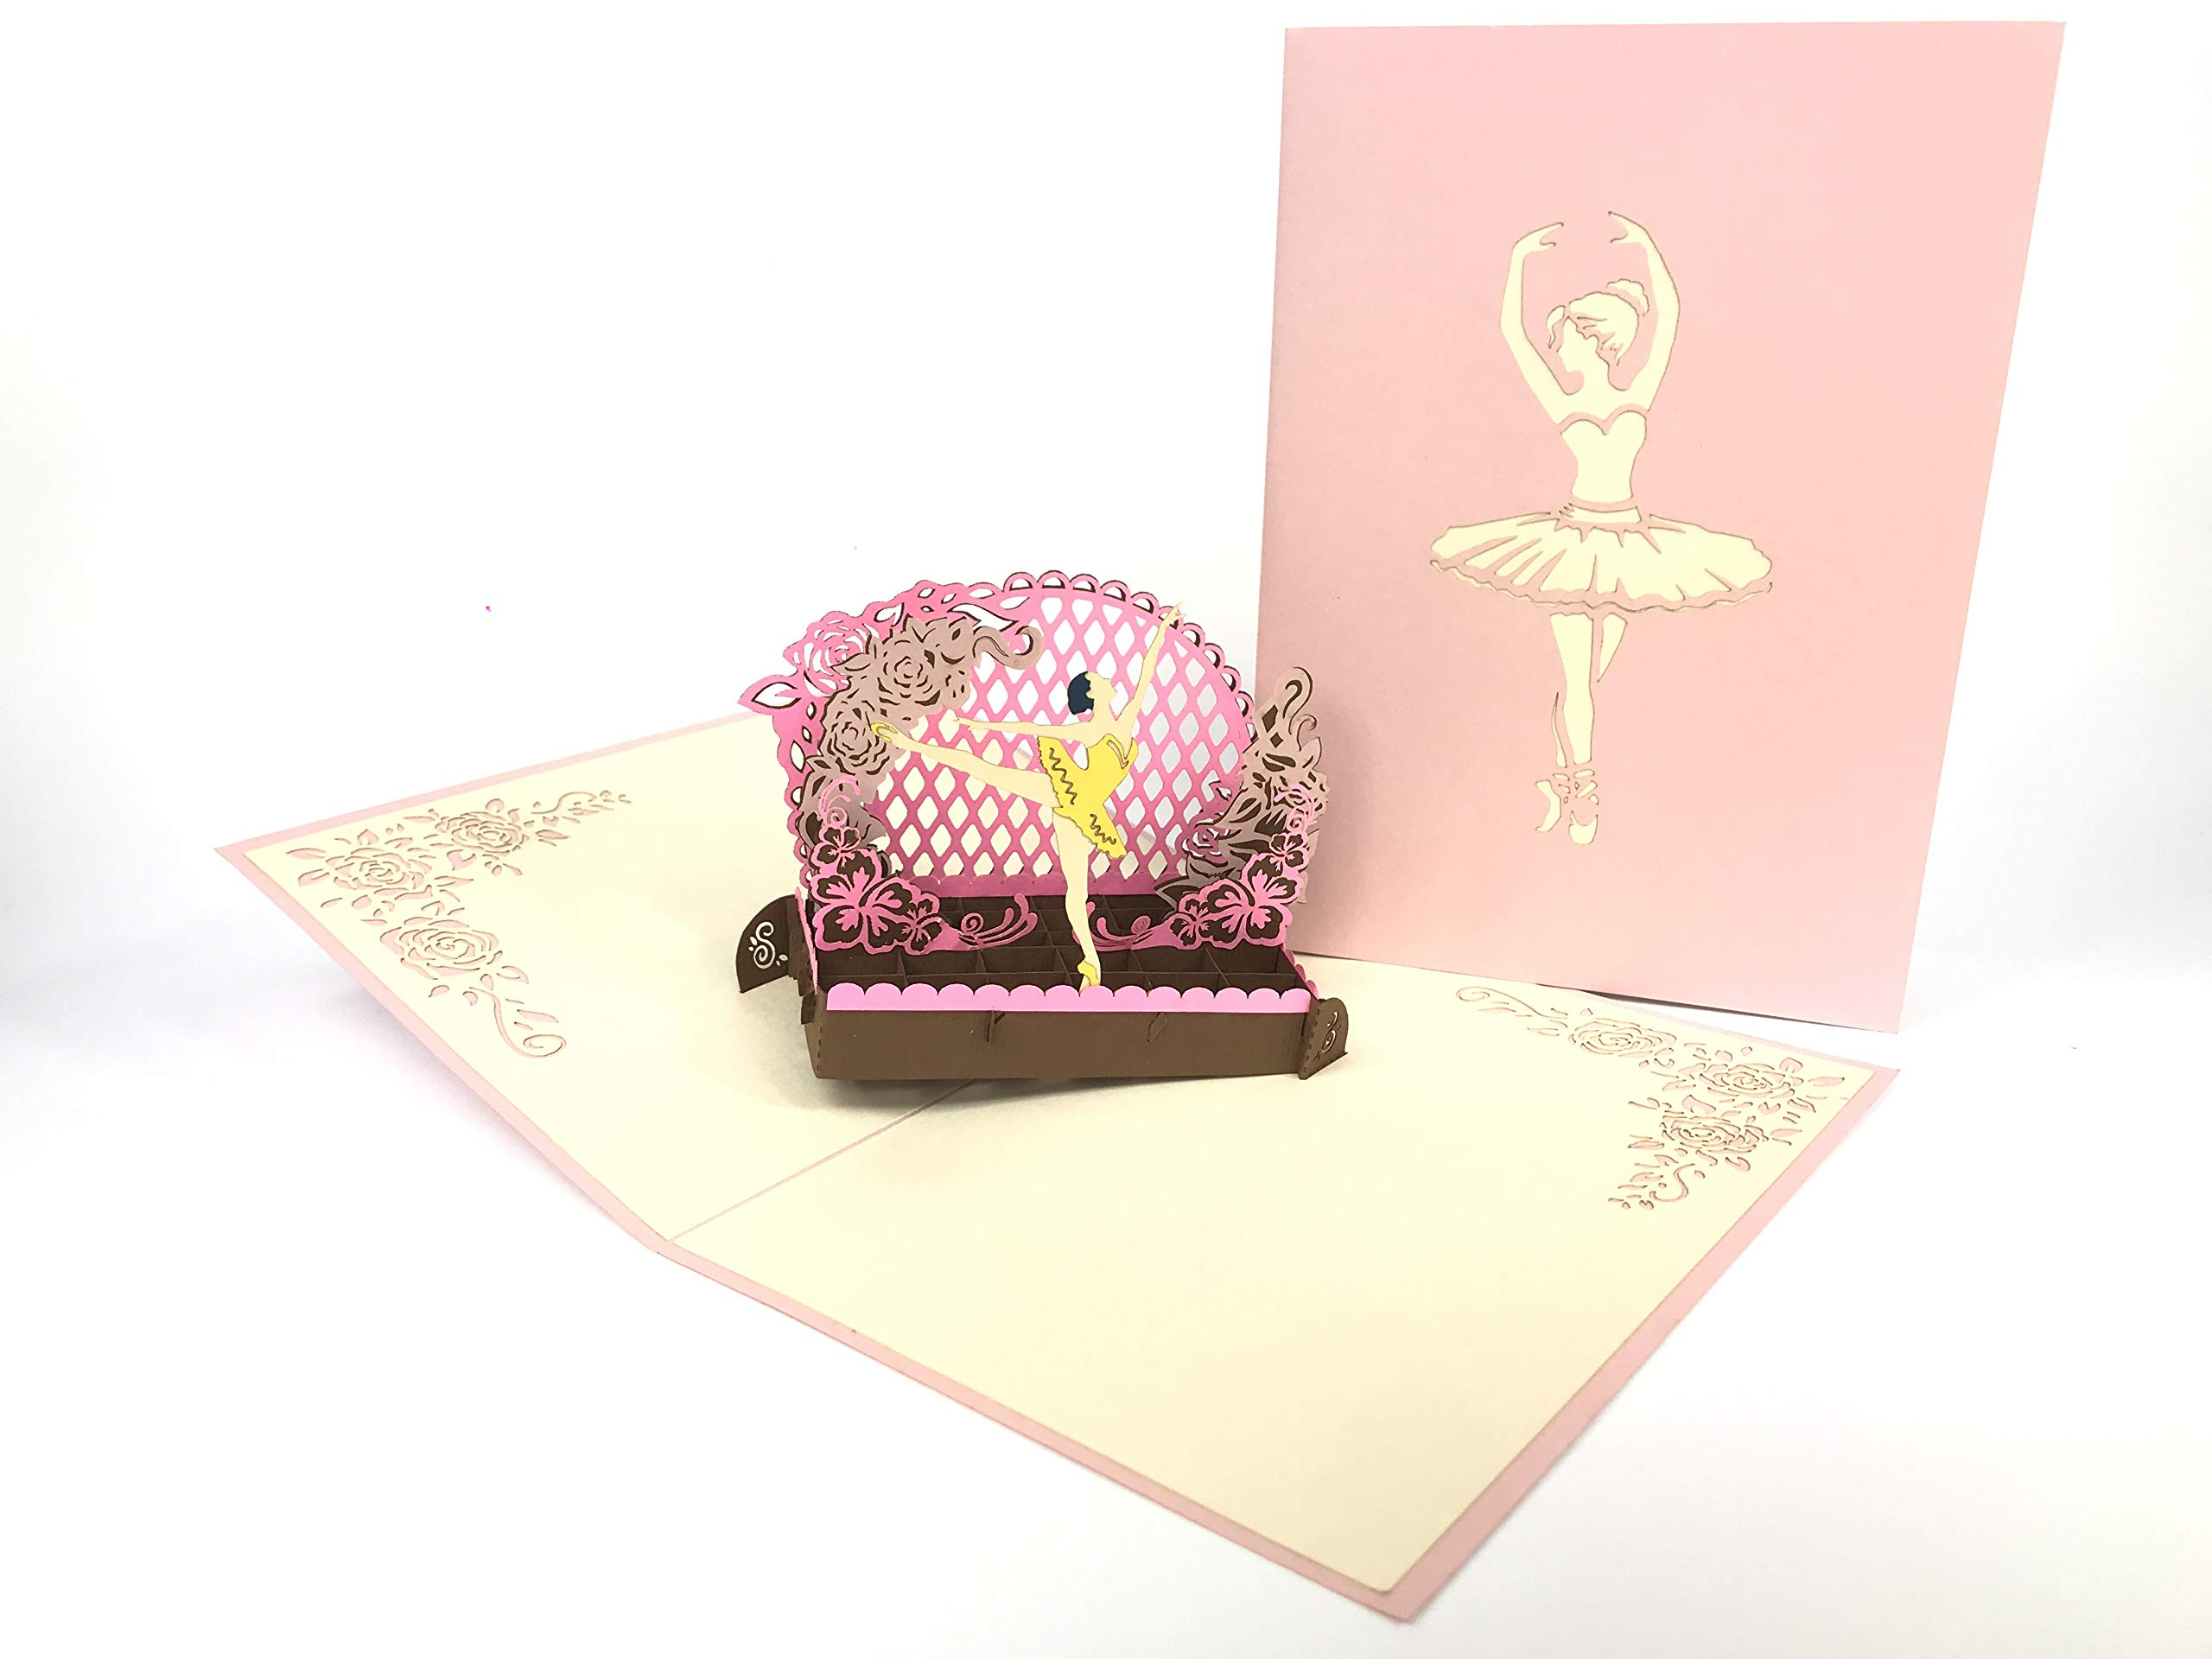 Ballerina Theater 3d Pop Up Greeting Card Handmade Happy Birthday Wedding Anniversary Friendship Merry Christmas Thanksgiving Thank You Best Wish Good Luck Happy New Year Valentine S Day Red Buy Online In Bahamas